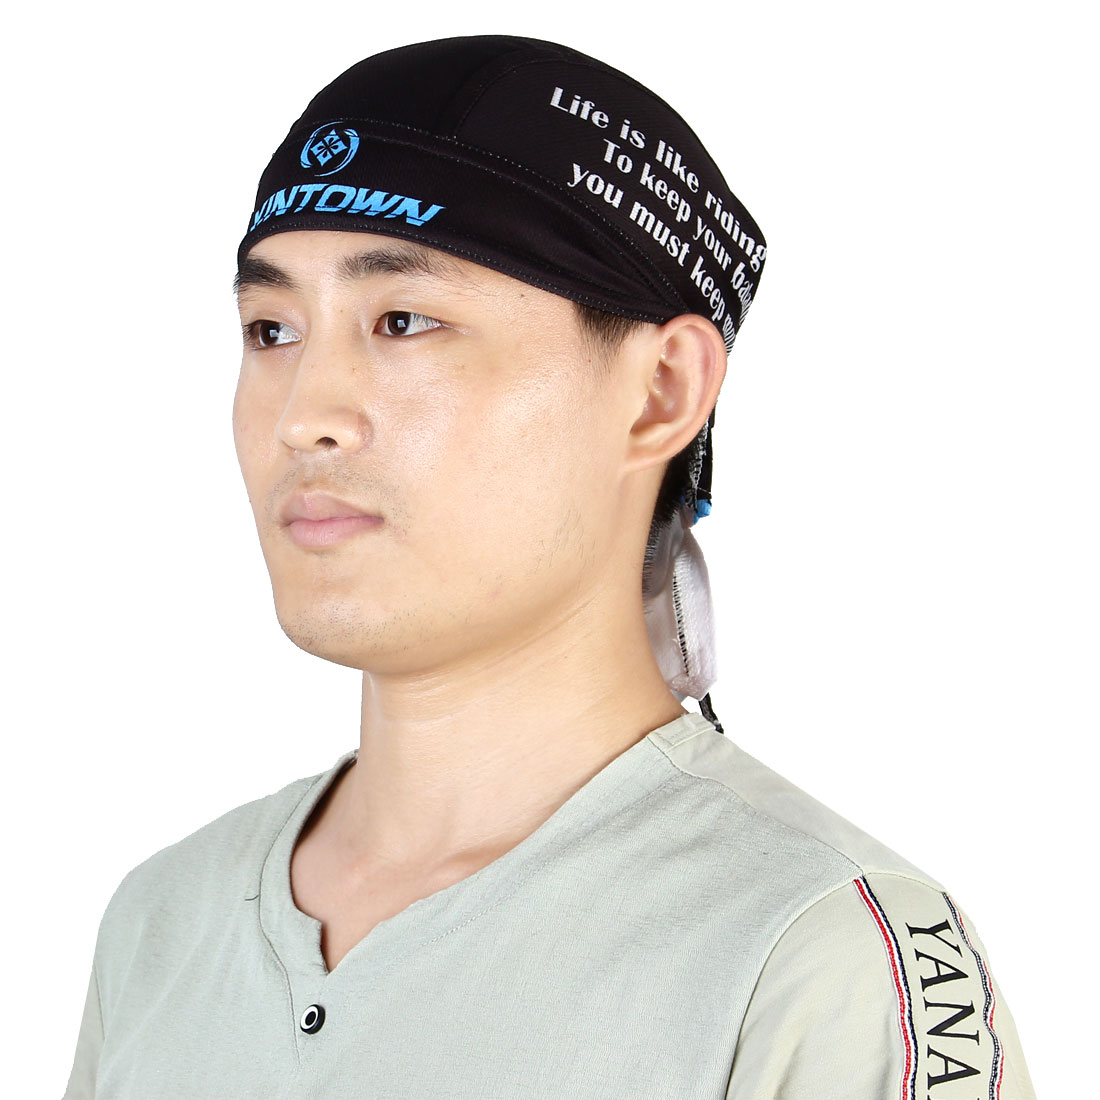 XINTOWN Authorized Adult Unisex Outdoor Running Headband Cap Cycling Biking Sports Pirate Hat